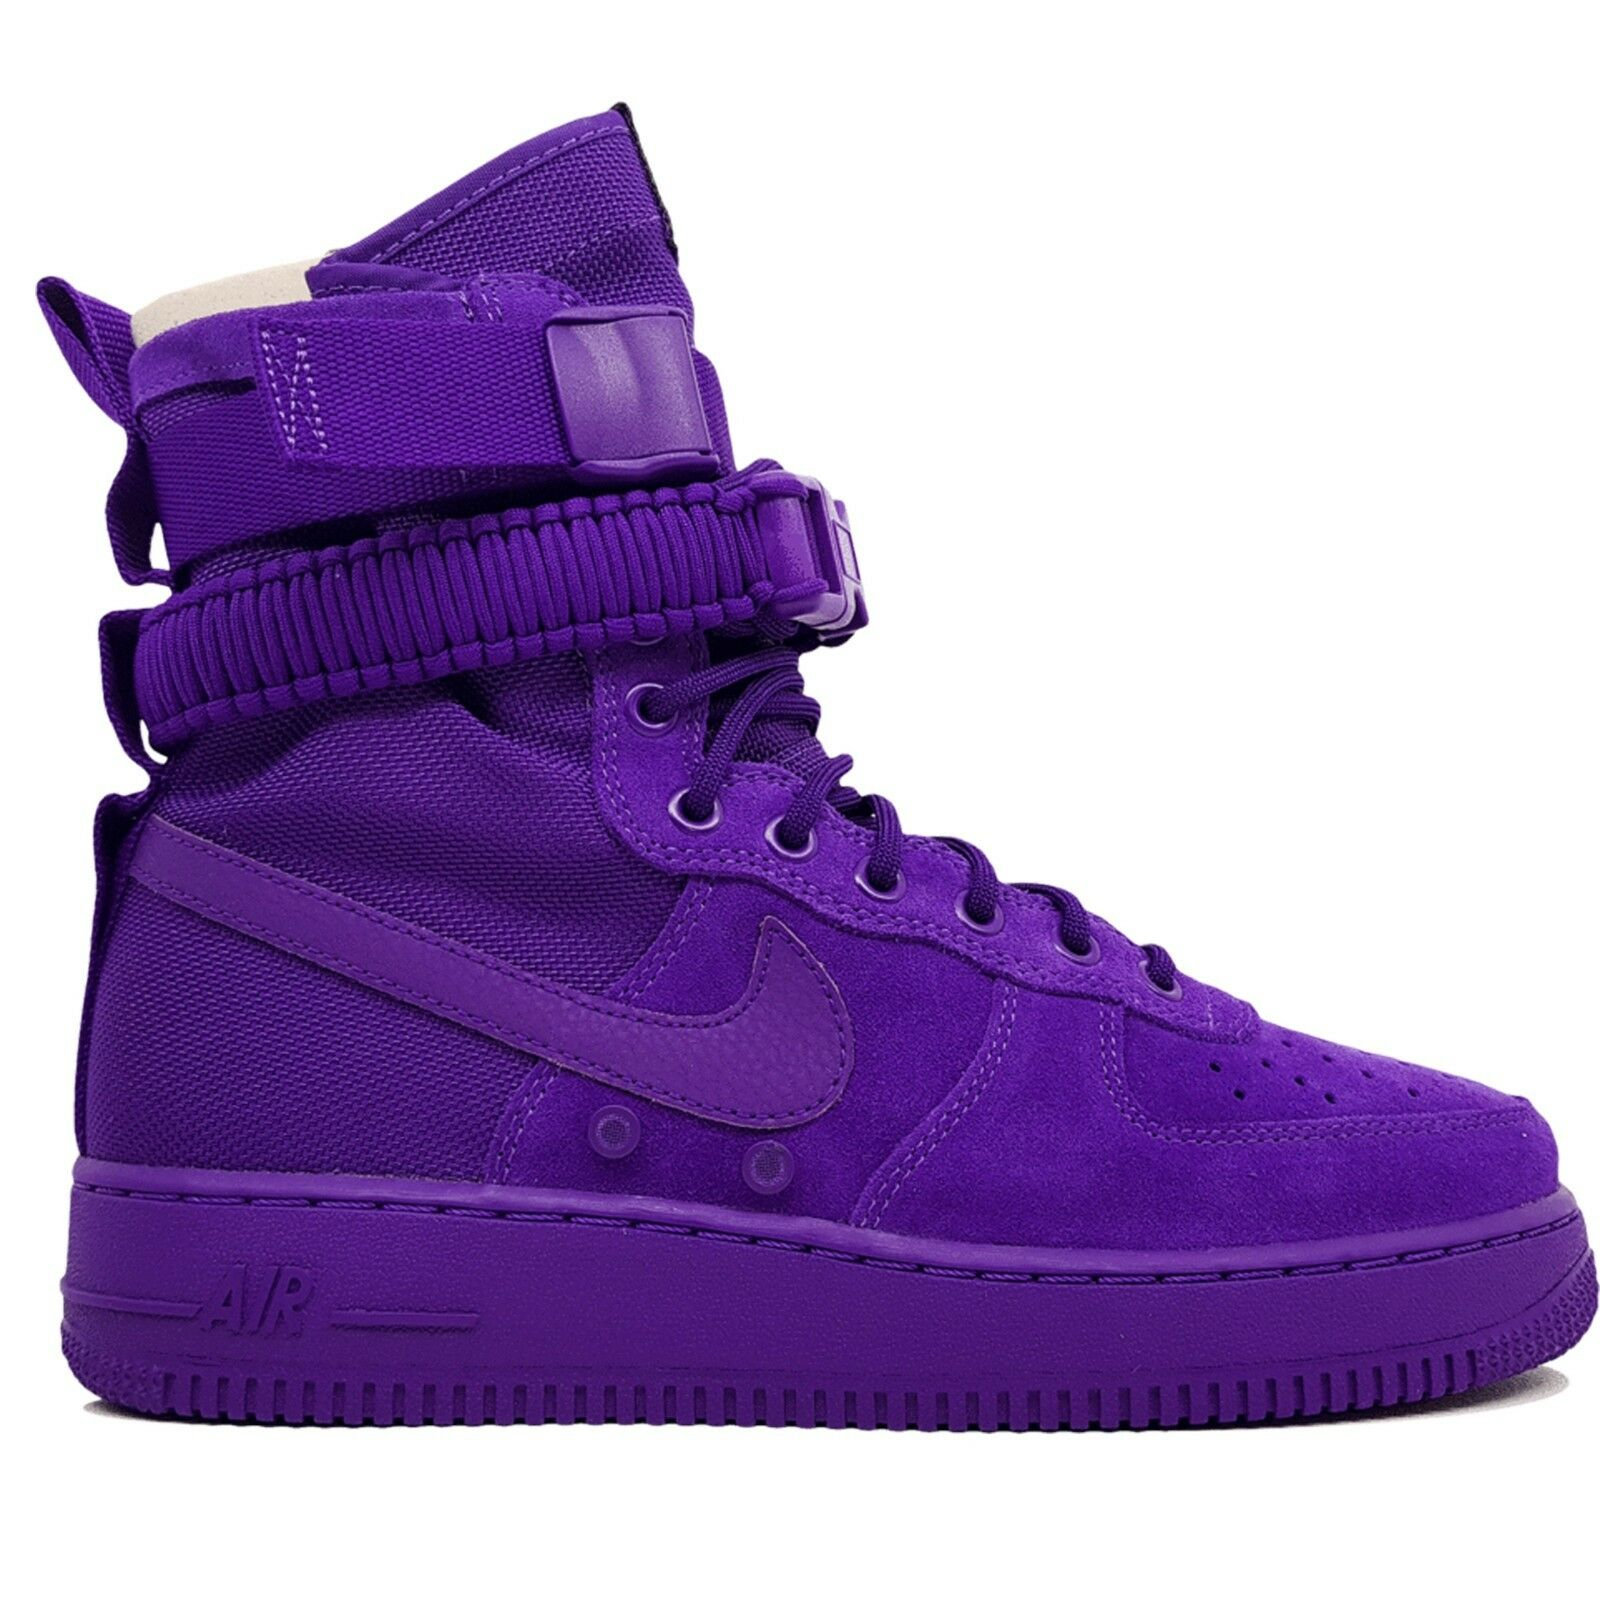 NIKE SF AF1 Special Air Force 1 One High Boot Court Purple 864024-500 size 11